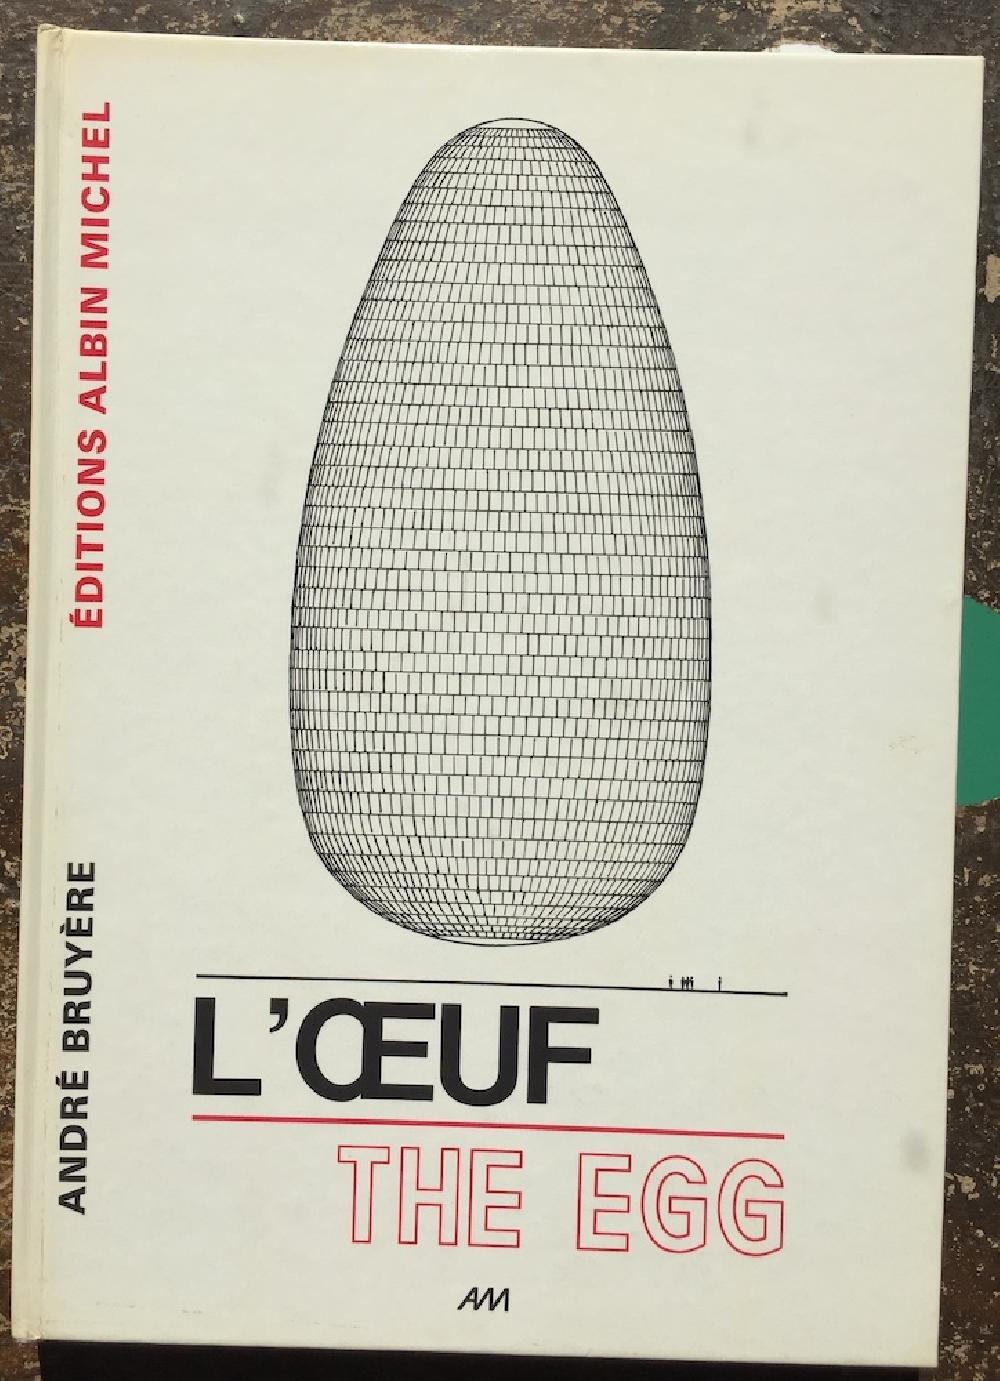 L'oeuf / The egg